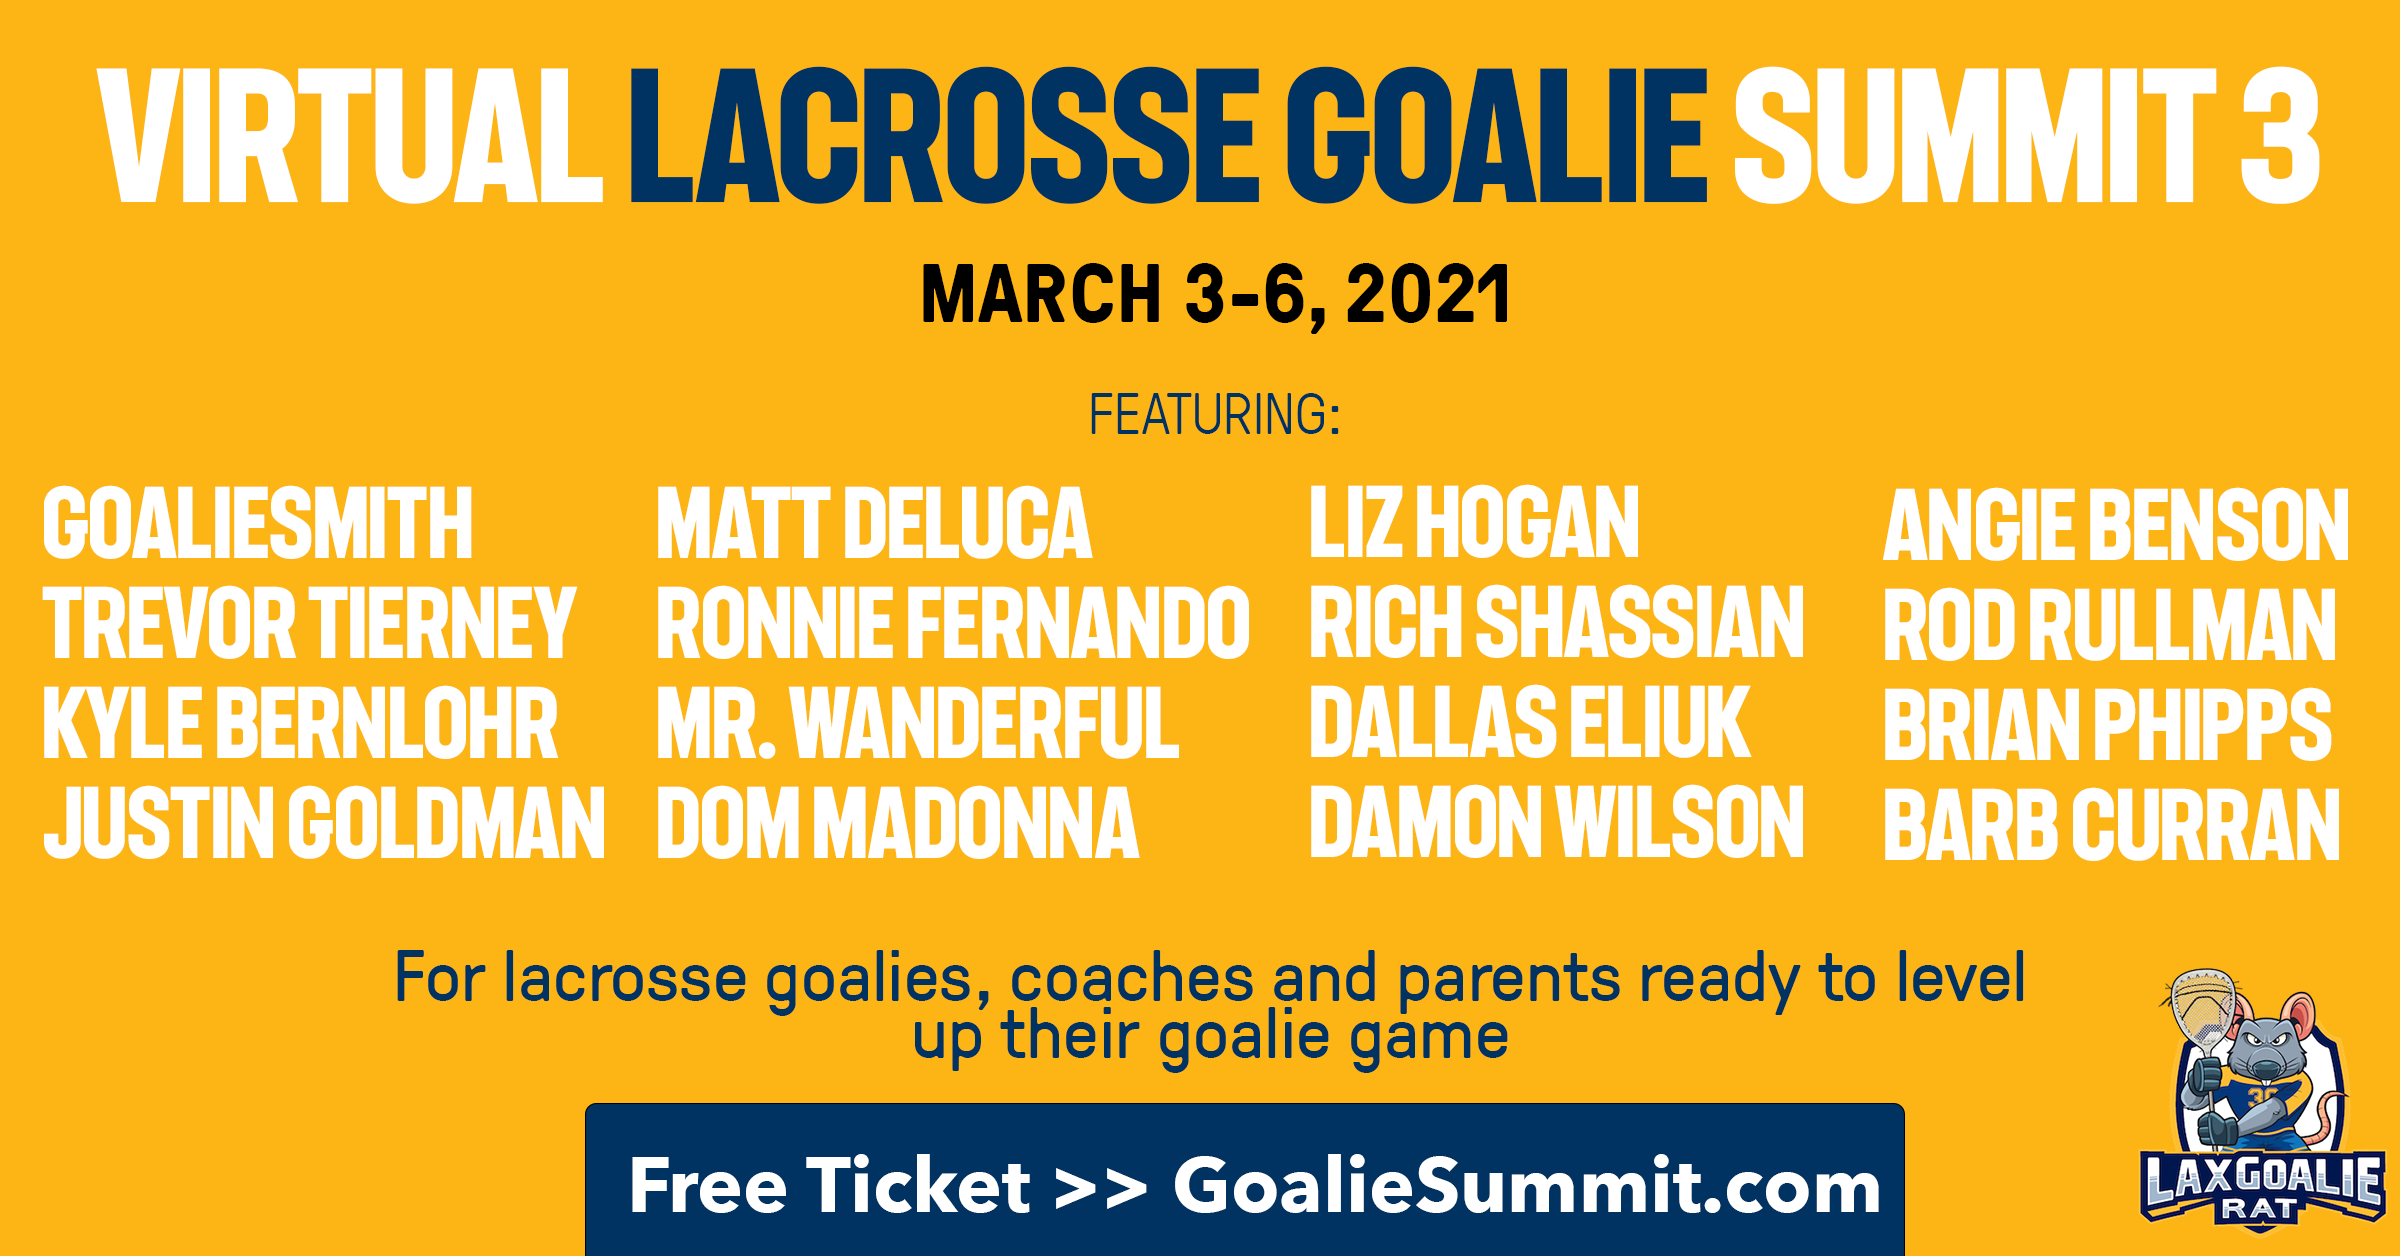 Virtual Lacrosse Goalie Summit 3